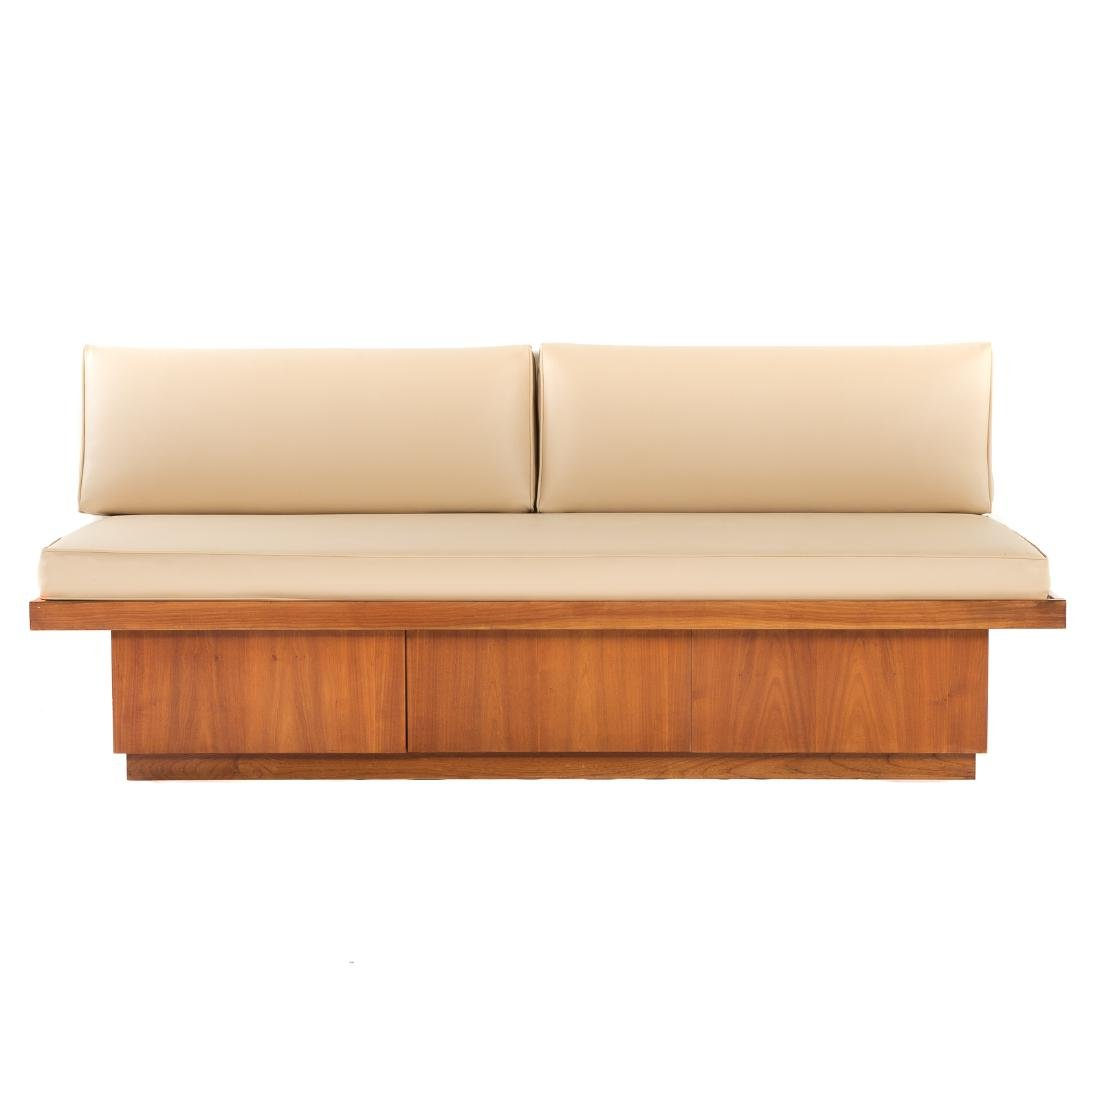 Attributed to George Nakashima.  Custom Daybed